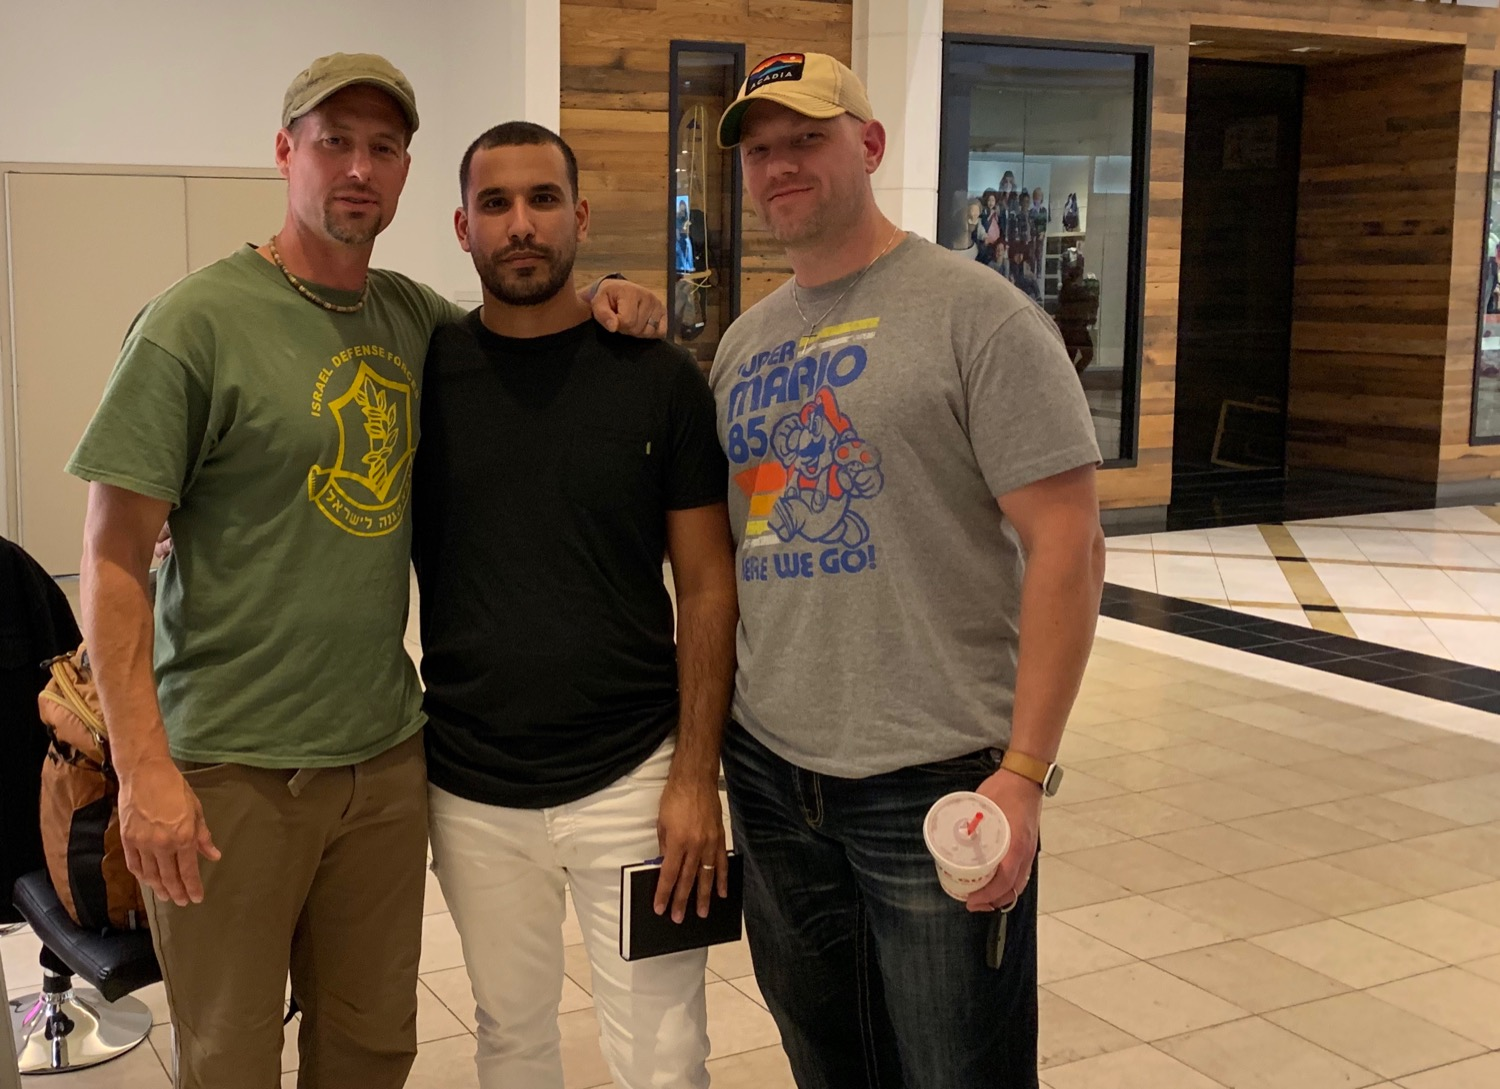 We met this young man from Israel in a Pennsylvania mall last October.